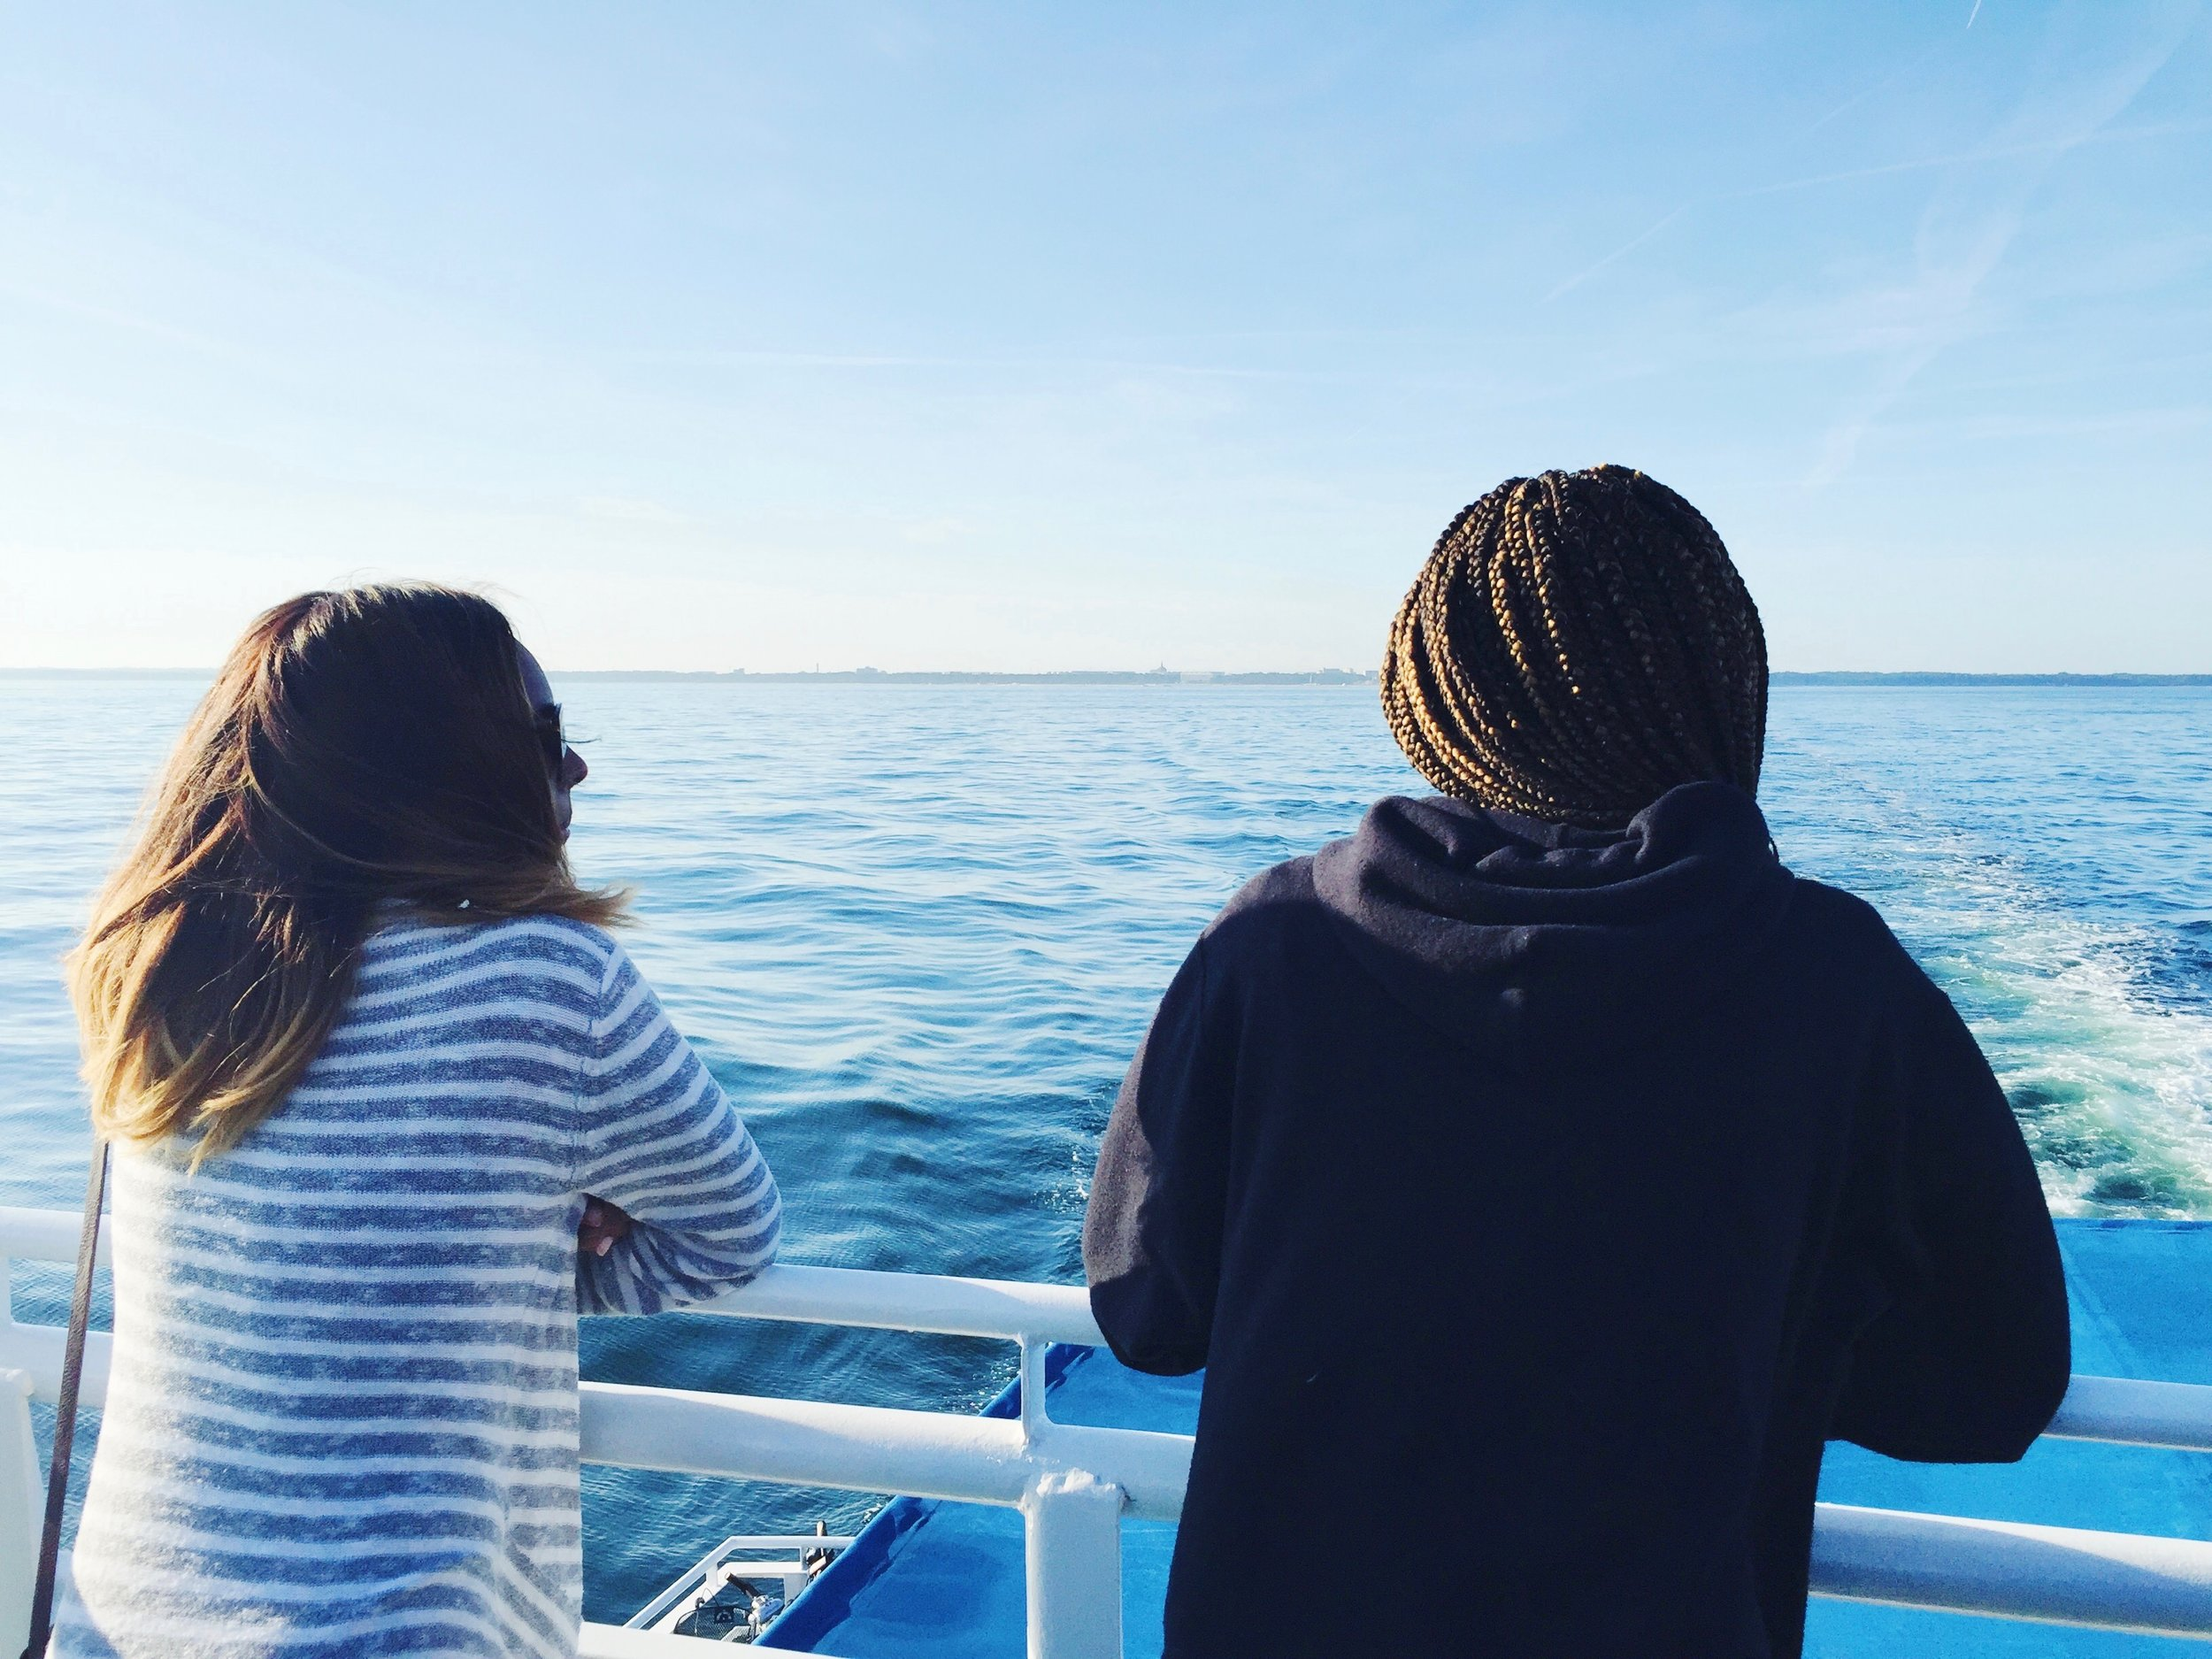 6 Cities to Visit in Poland- Day trip to Bornholm, Denmark